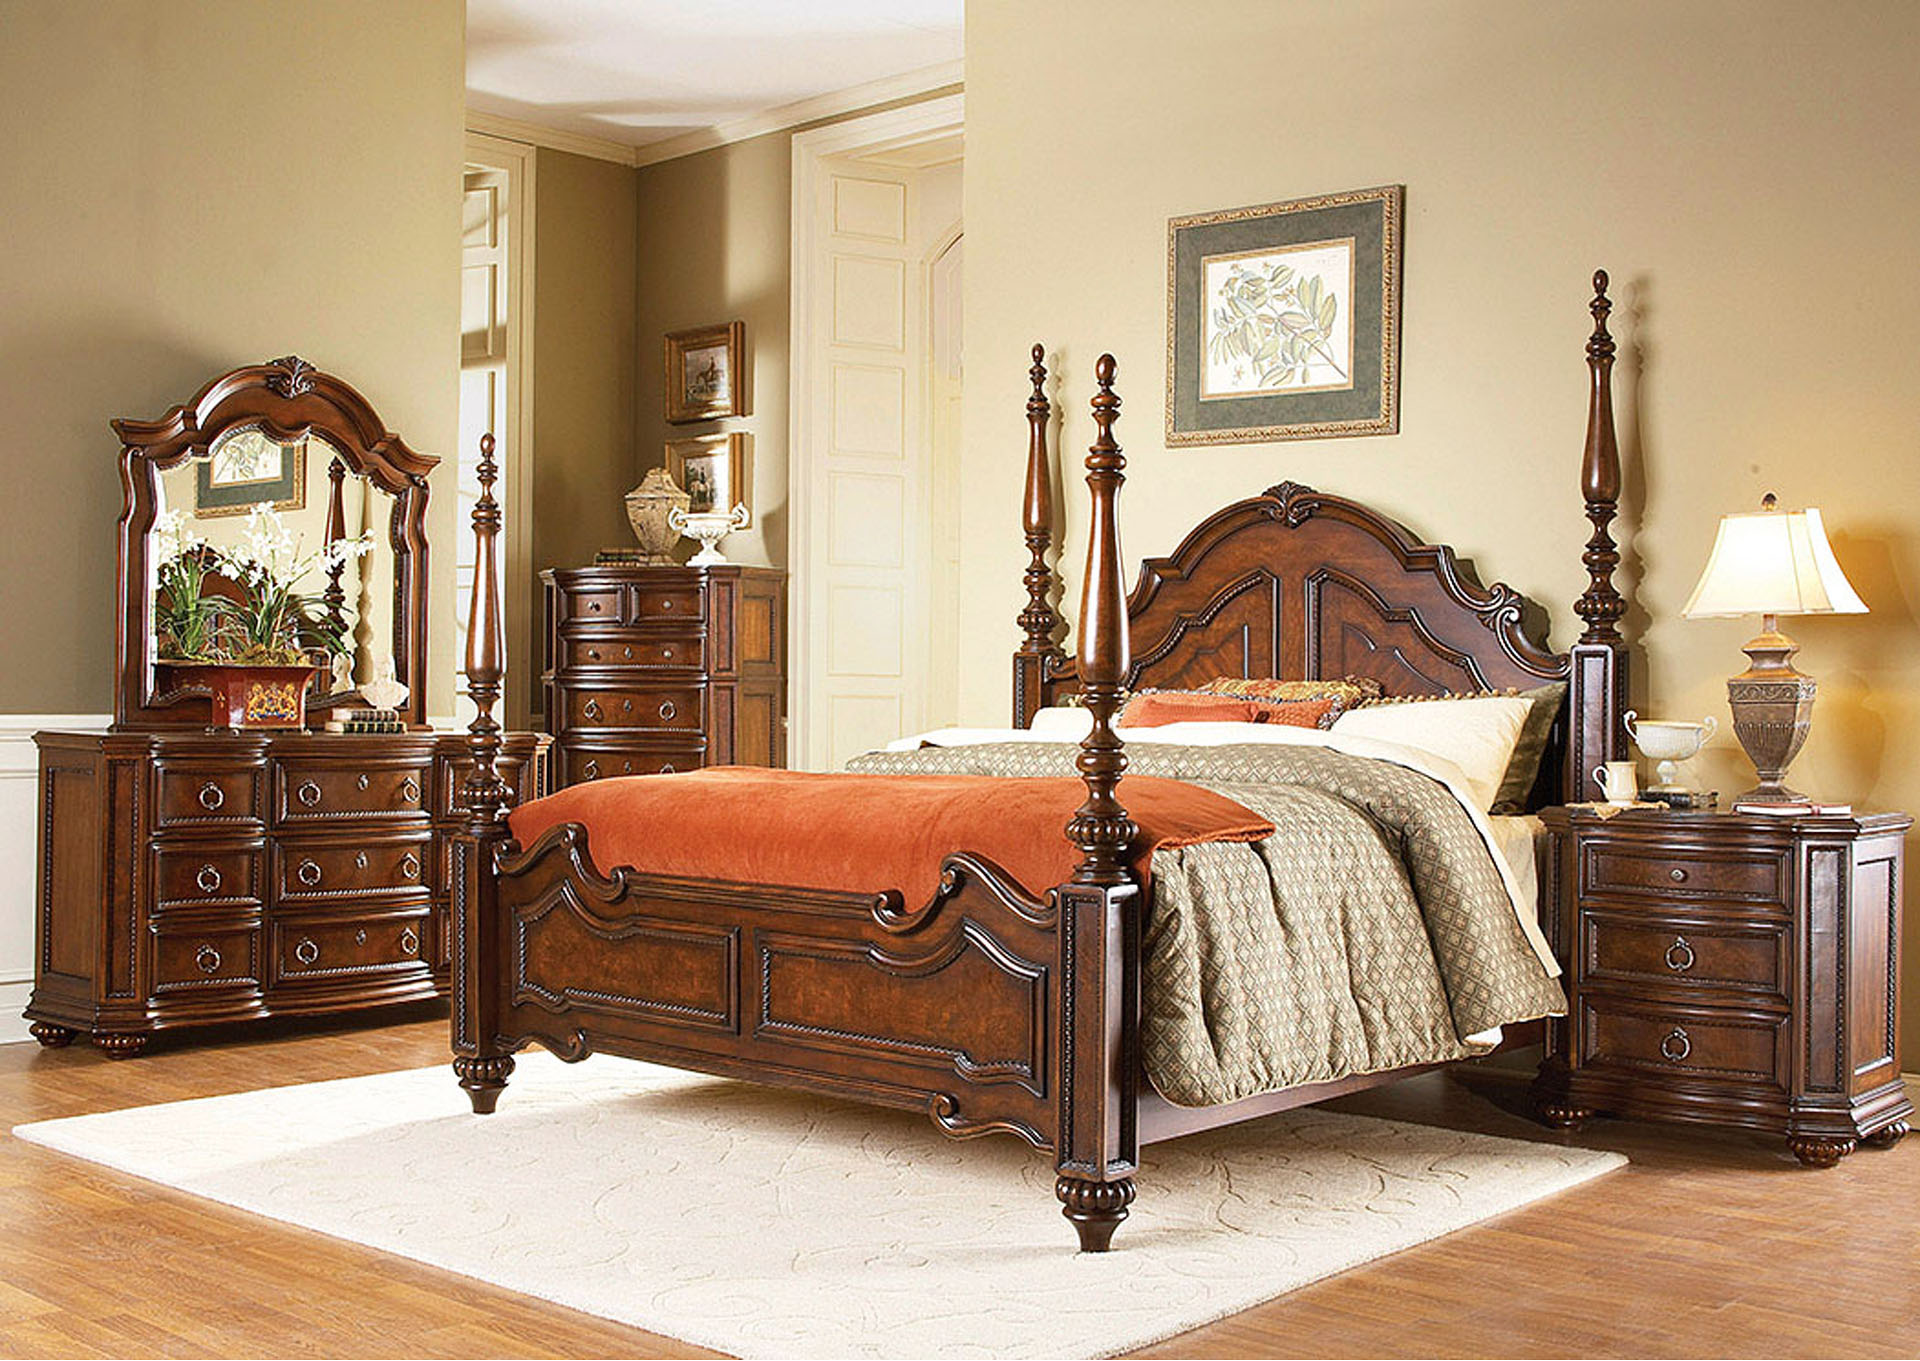 Prenzo Warm Brown California King Poster Bed,Homelegance